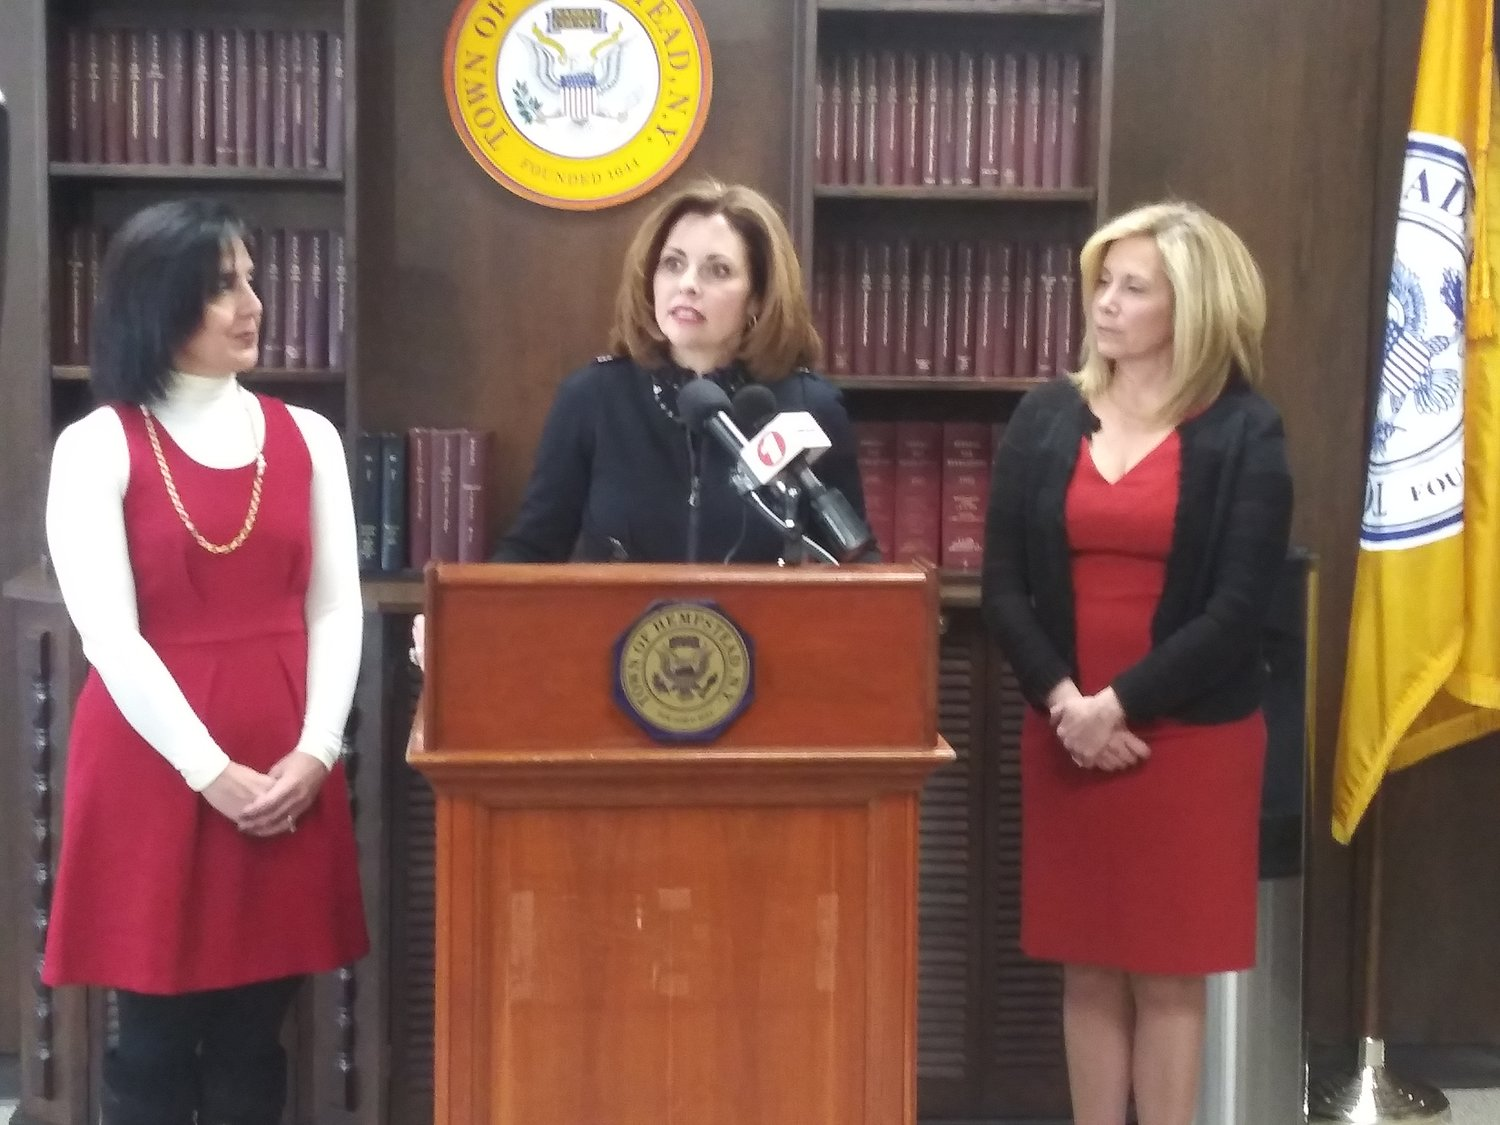 Town of Hempstead Councilwoman Erin King Sweeney, at lectern, joined Town Supervisor Laura Gillen, right, and Town Clerk Sylvia Cabana to announce a pair of bills to address the sale and use of marijuana in the town.